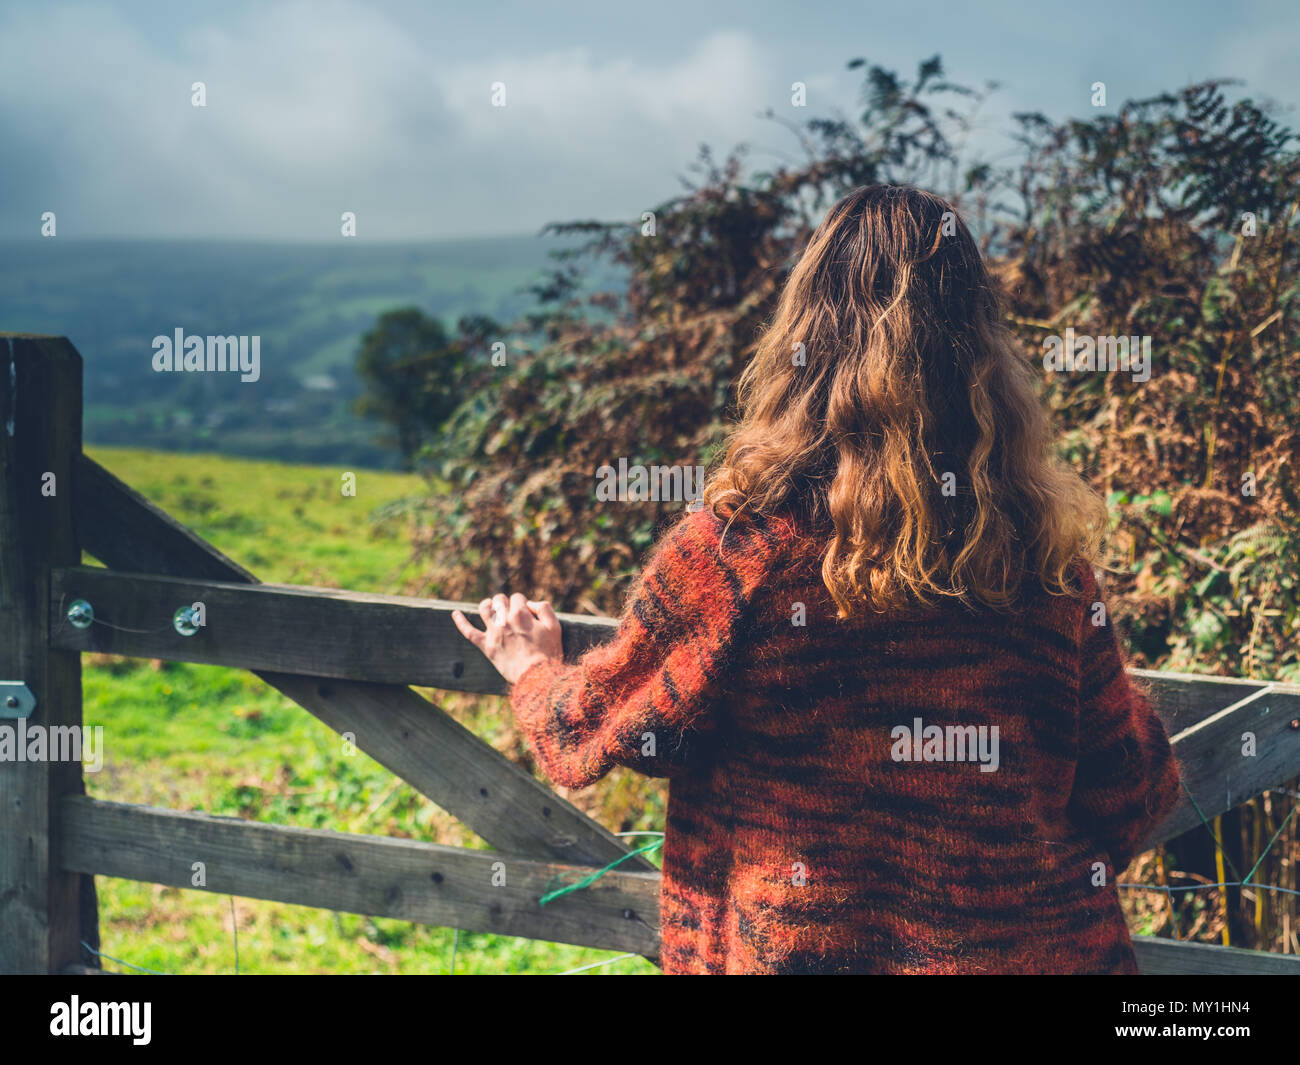 A young woman is standing by a fence and gate in the countryside - Stock Image